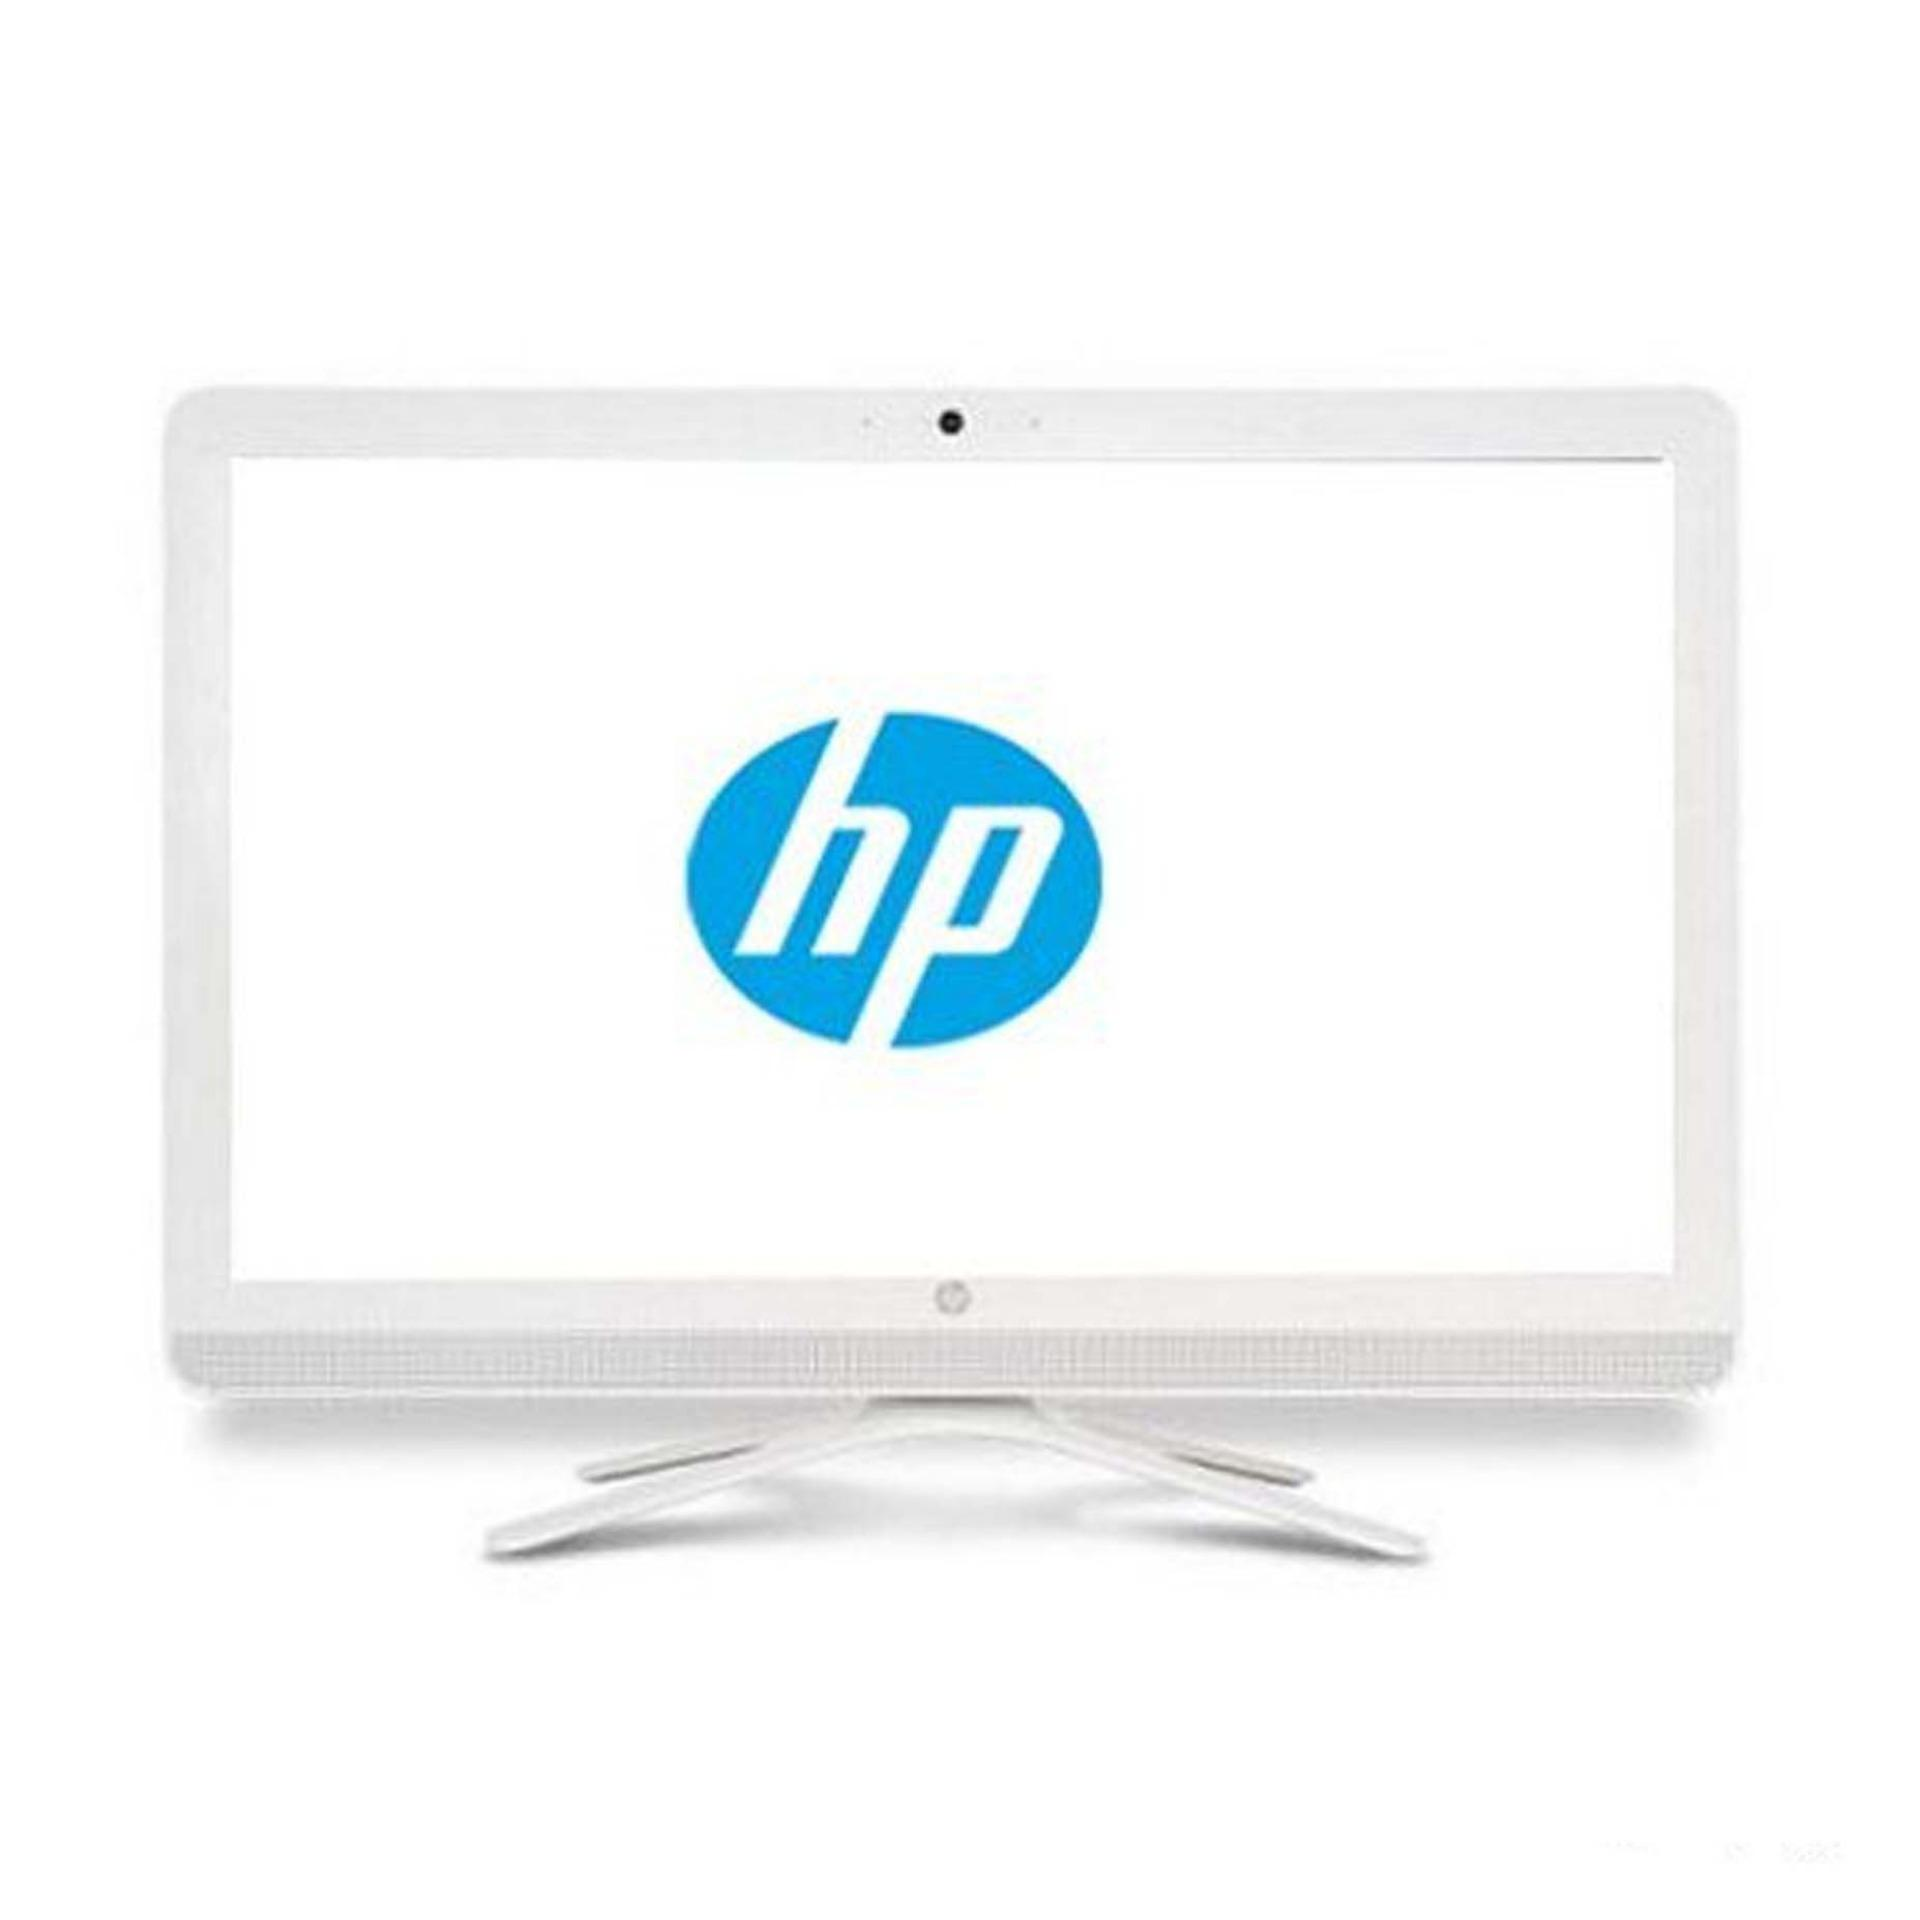 Hp Pc All In One 24 B213d Intel Core I7 7700 4gb 1tb Vga 238 Windows Lenovo Aio 510 22ish 0fid I5 White 20 C030l I3 6100